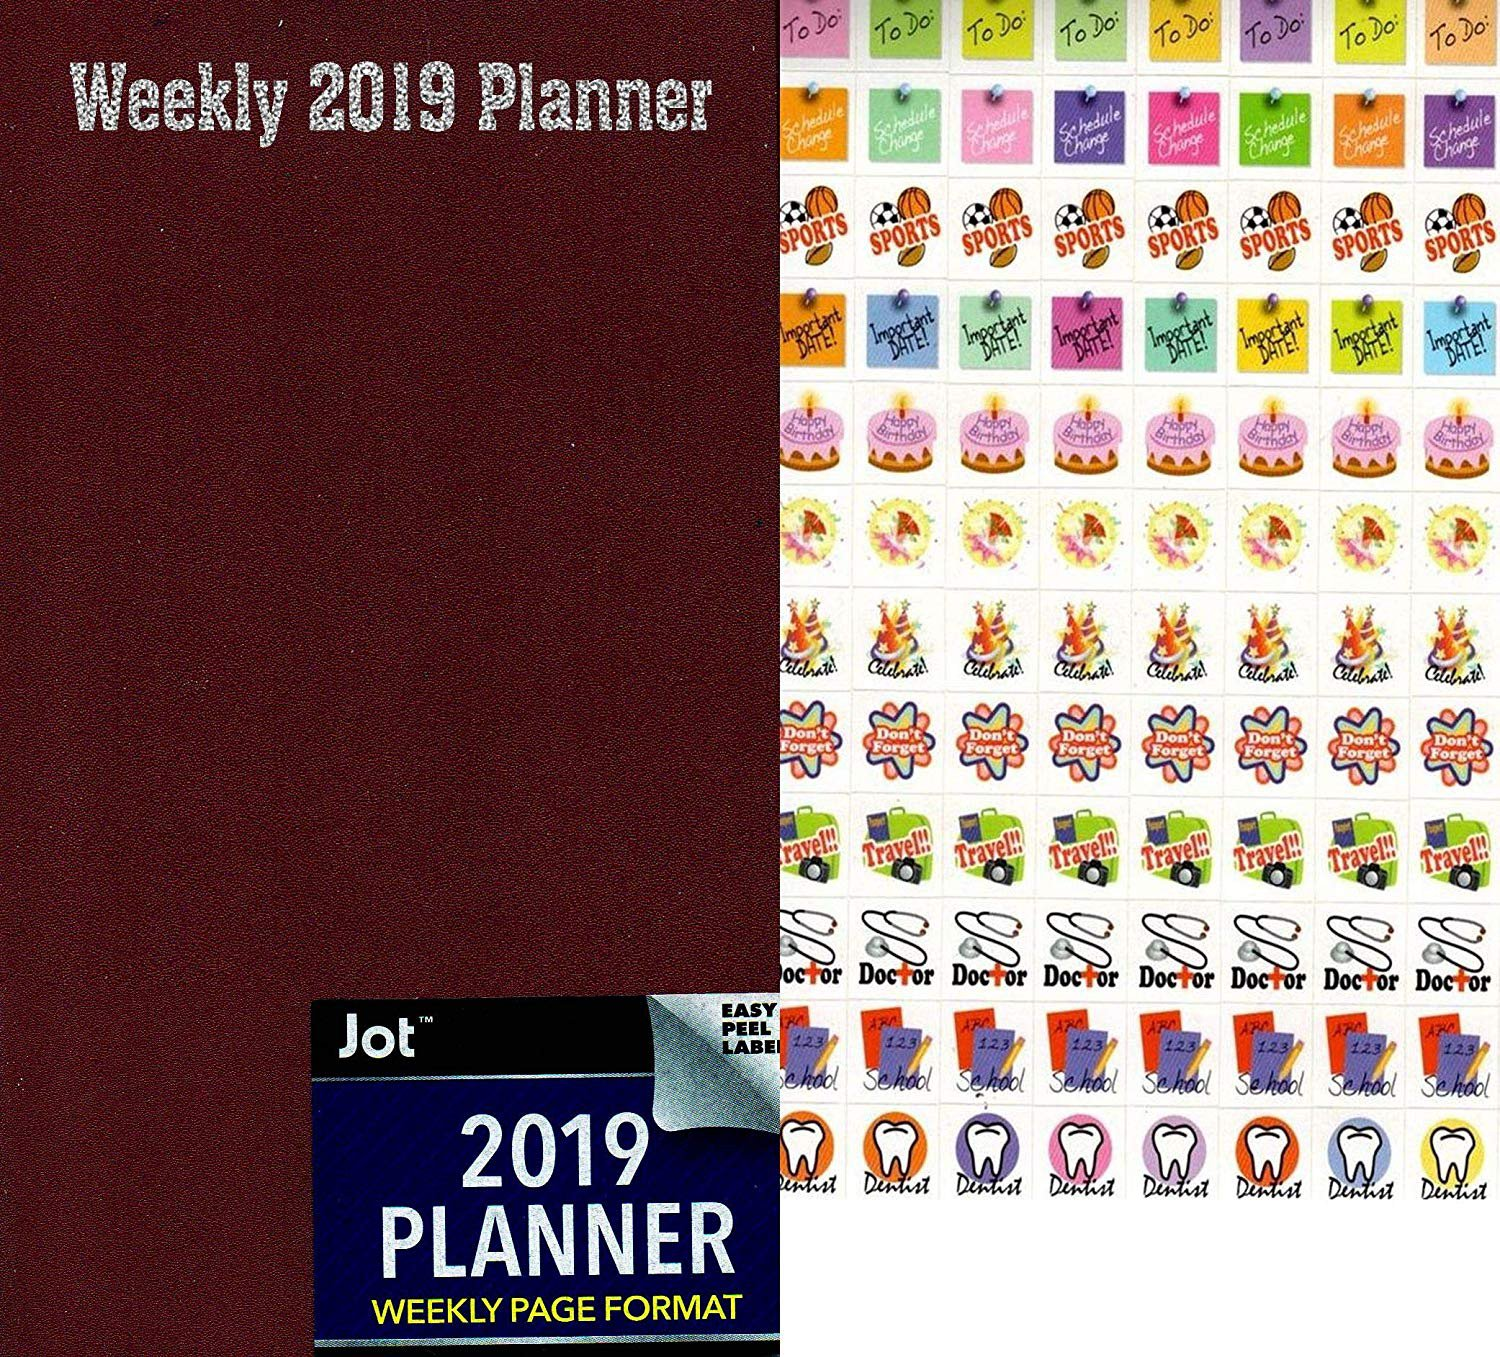 2019 Weekly Pocket Appointment Planner/Calendar/Organizer - Color (Burgundy) - with 120 Stickers